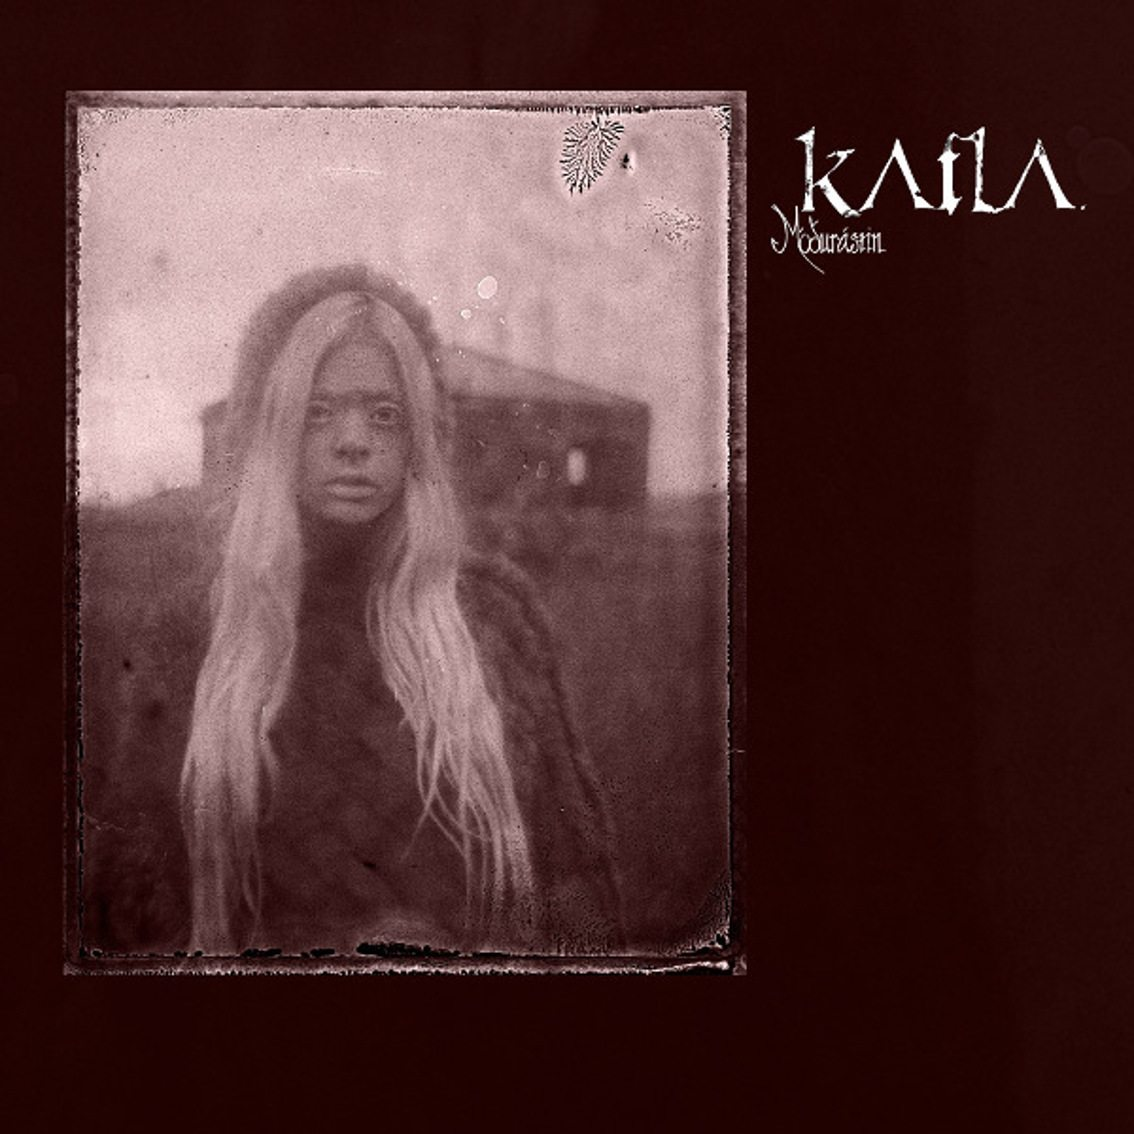 Icelandic act Katla debut'Móðurástin' out on CD, 2xLP vinyl and as a 2CD hardcover artbook